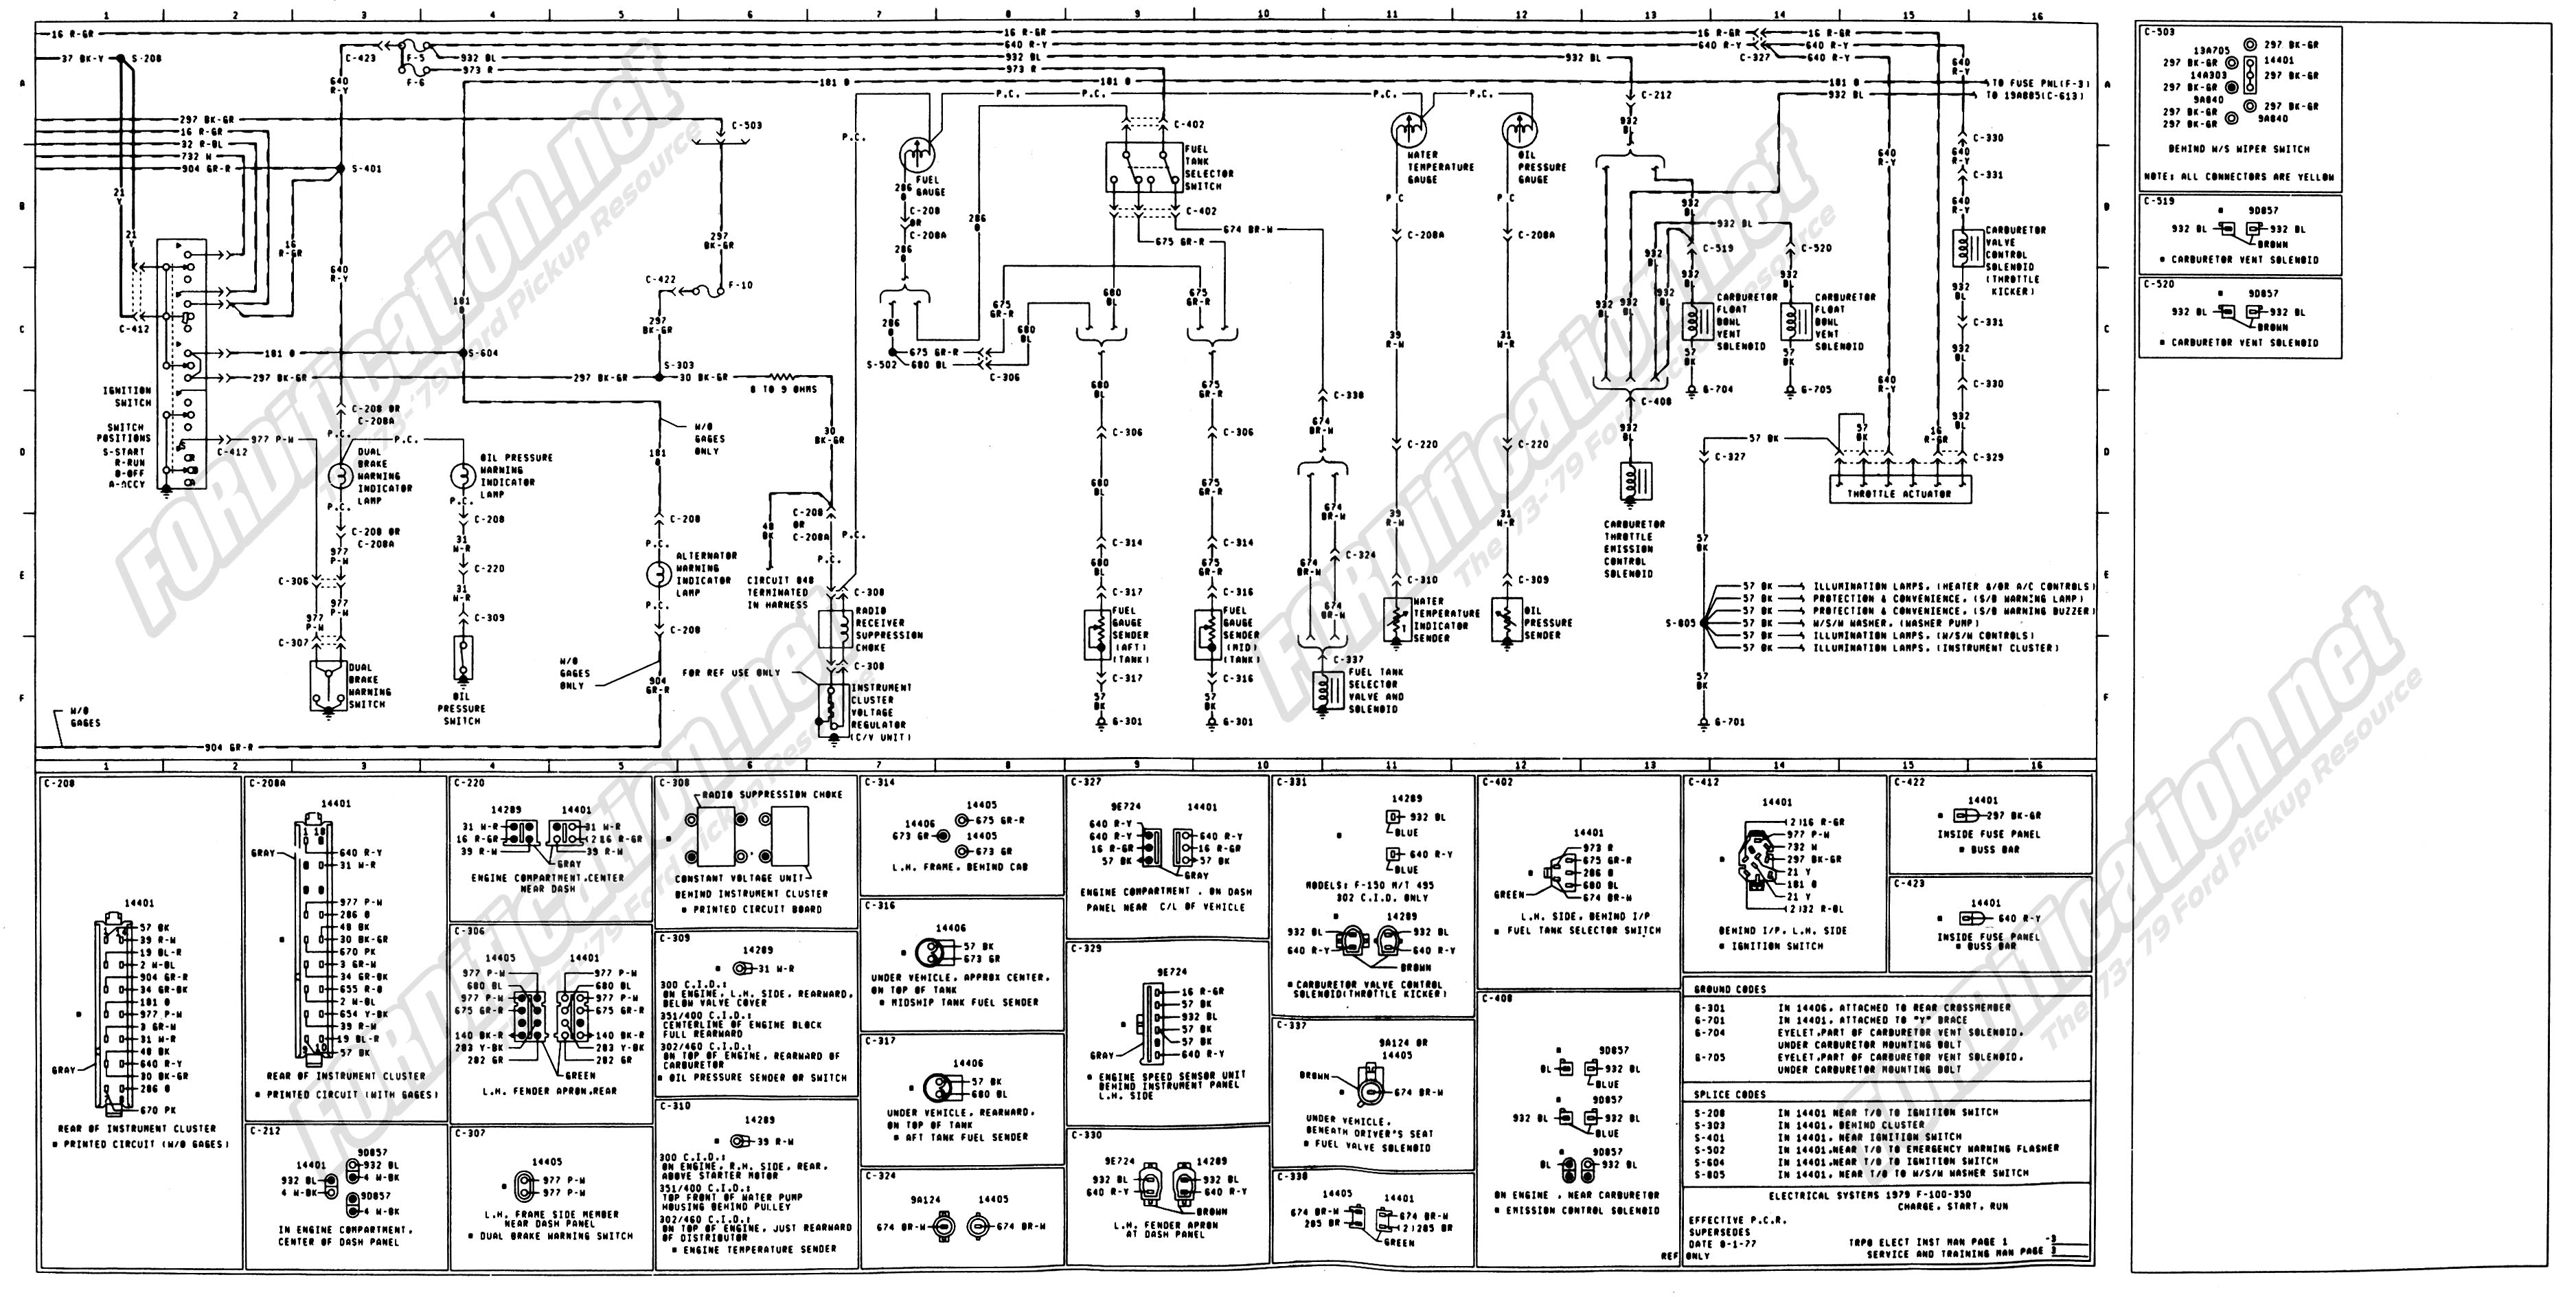 2001 ford f150 headlight wiring diagram impco lpg 1973 1979 truck diagrams schematics fordification net